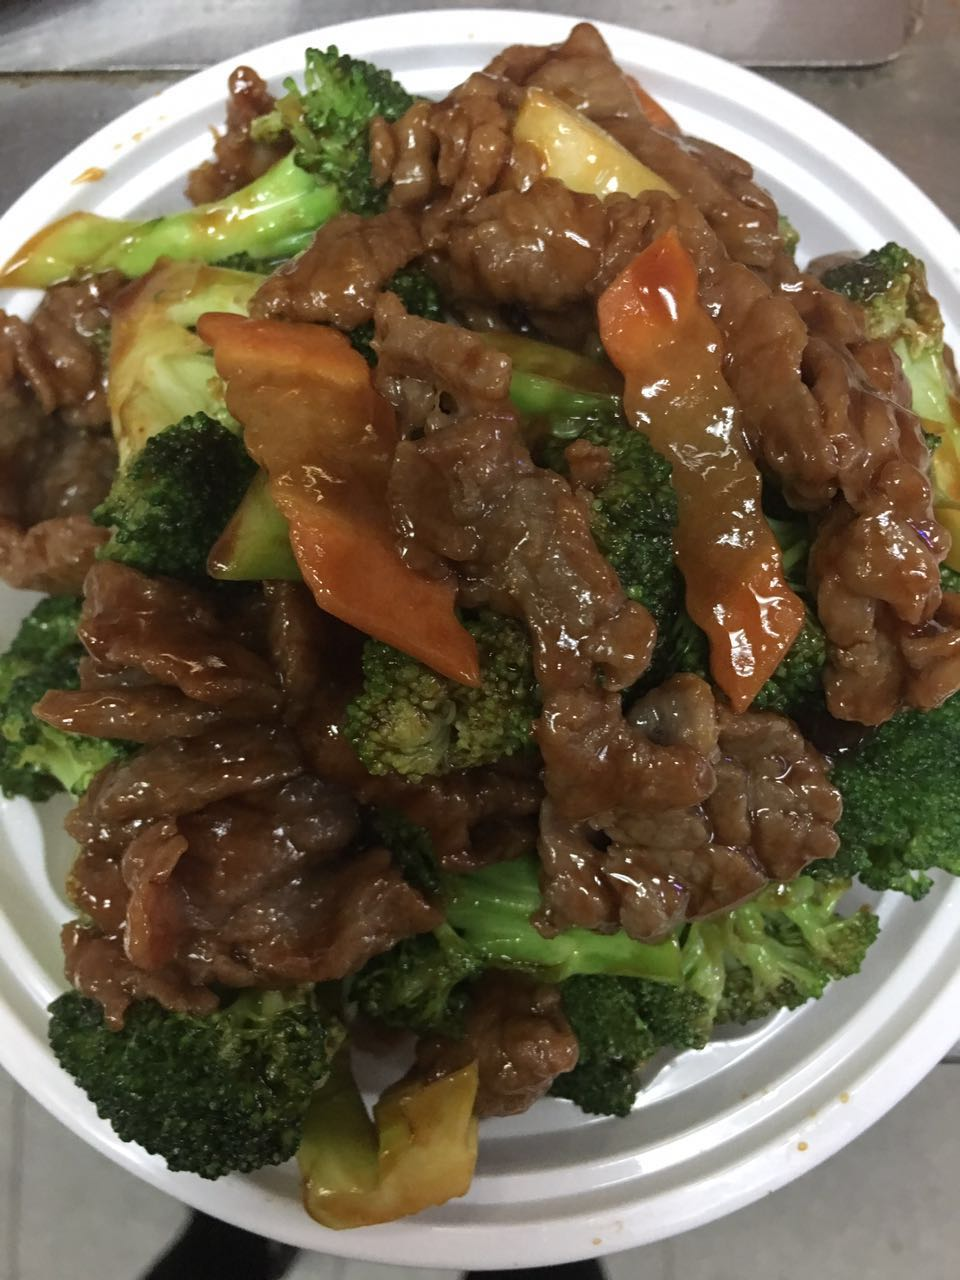 89. Beef w. Broccoli Image